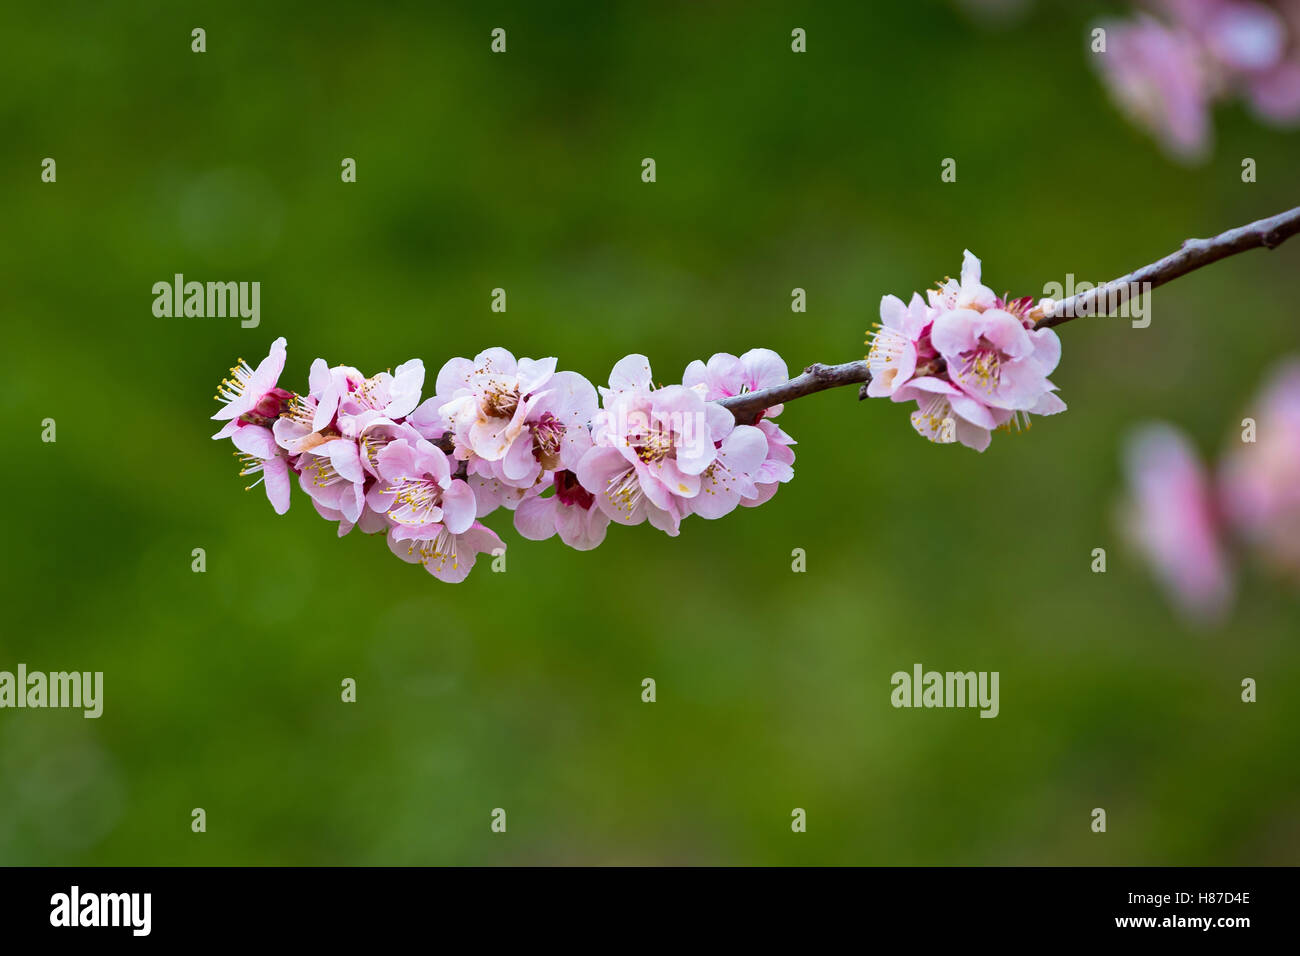 Blossom apricot tree springtime view on green background - Stock Image